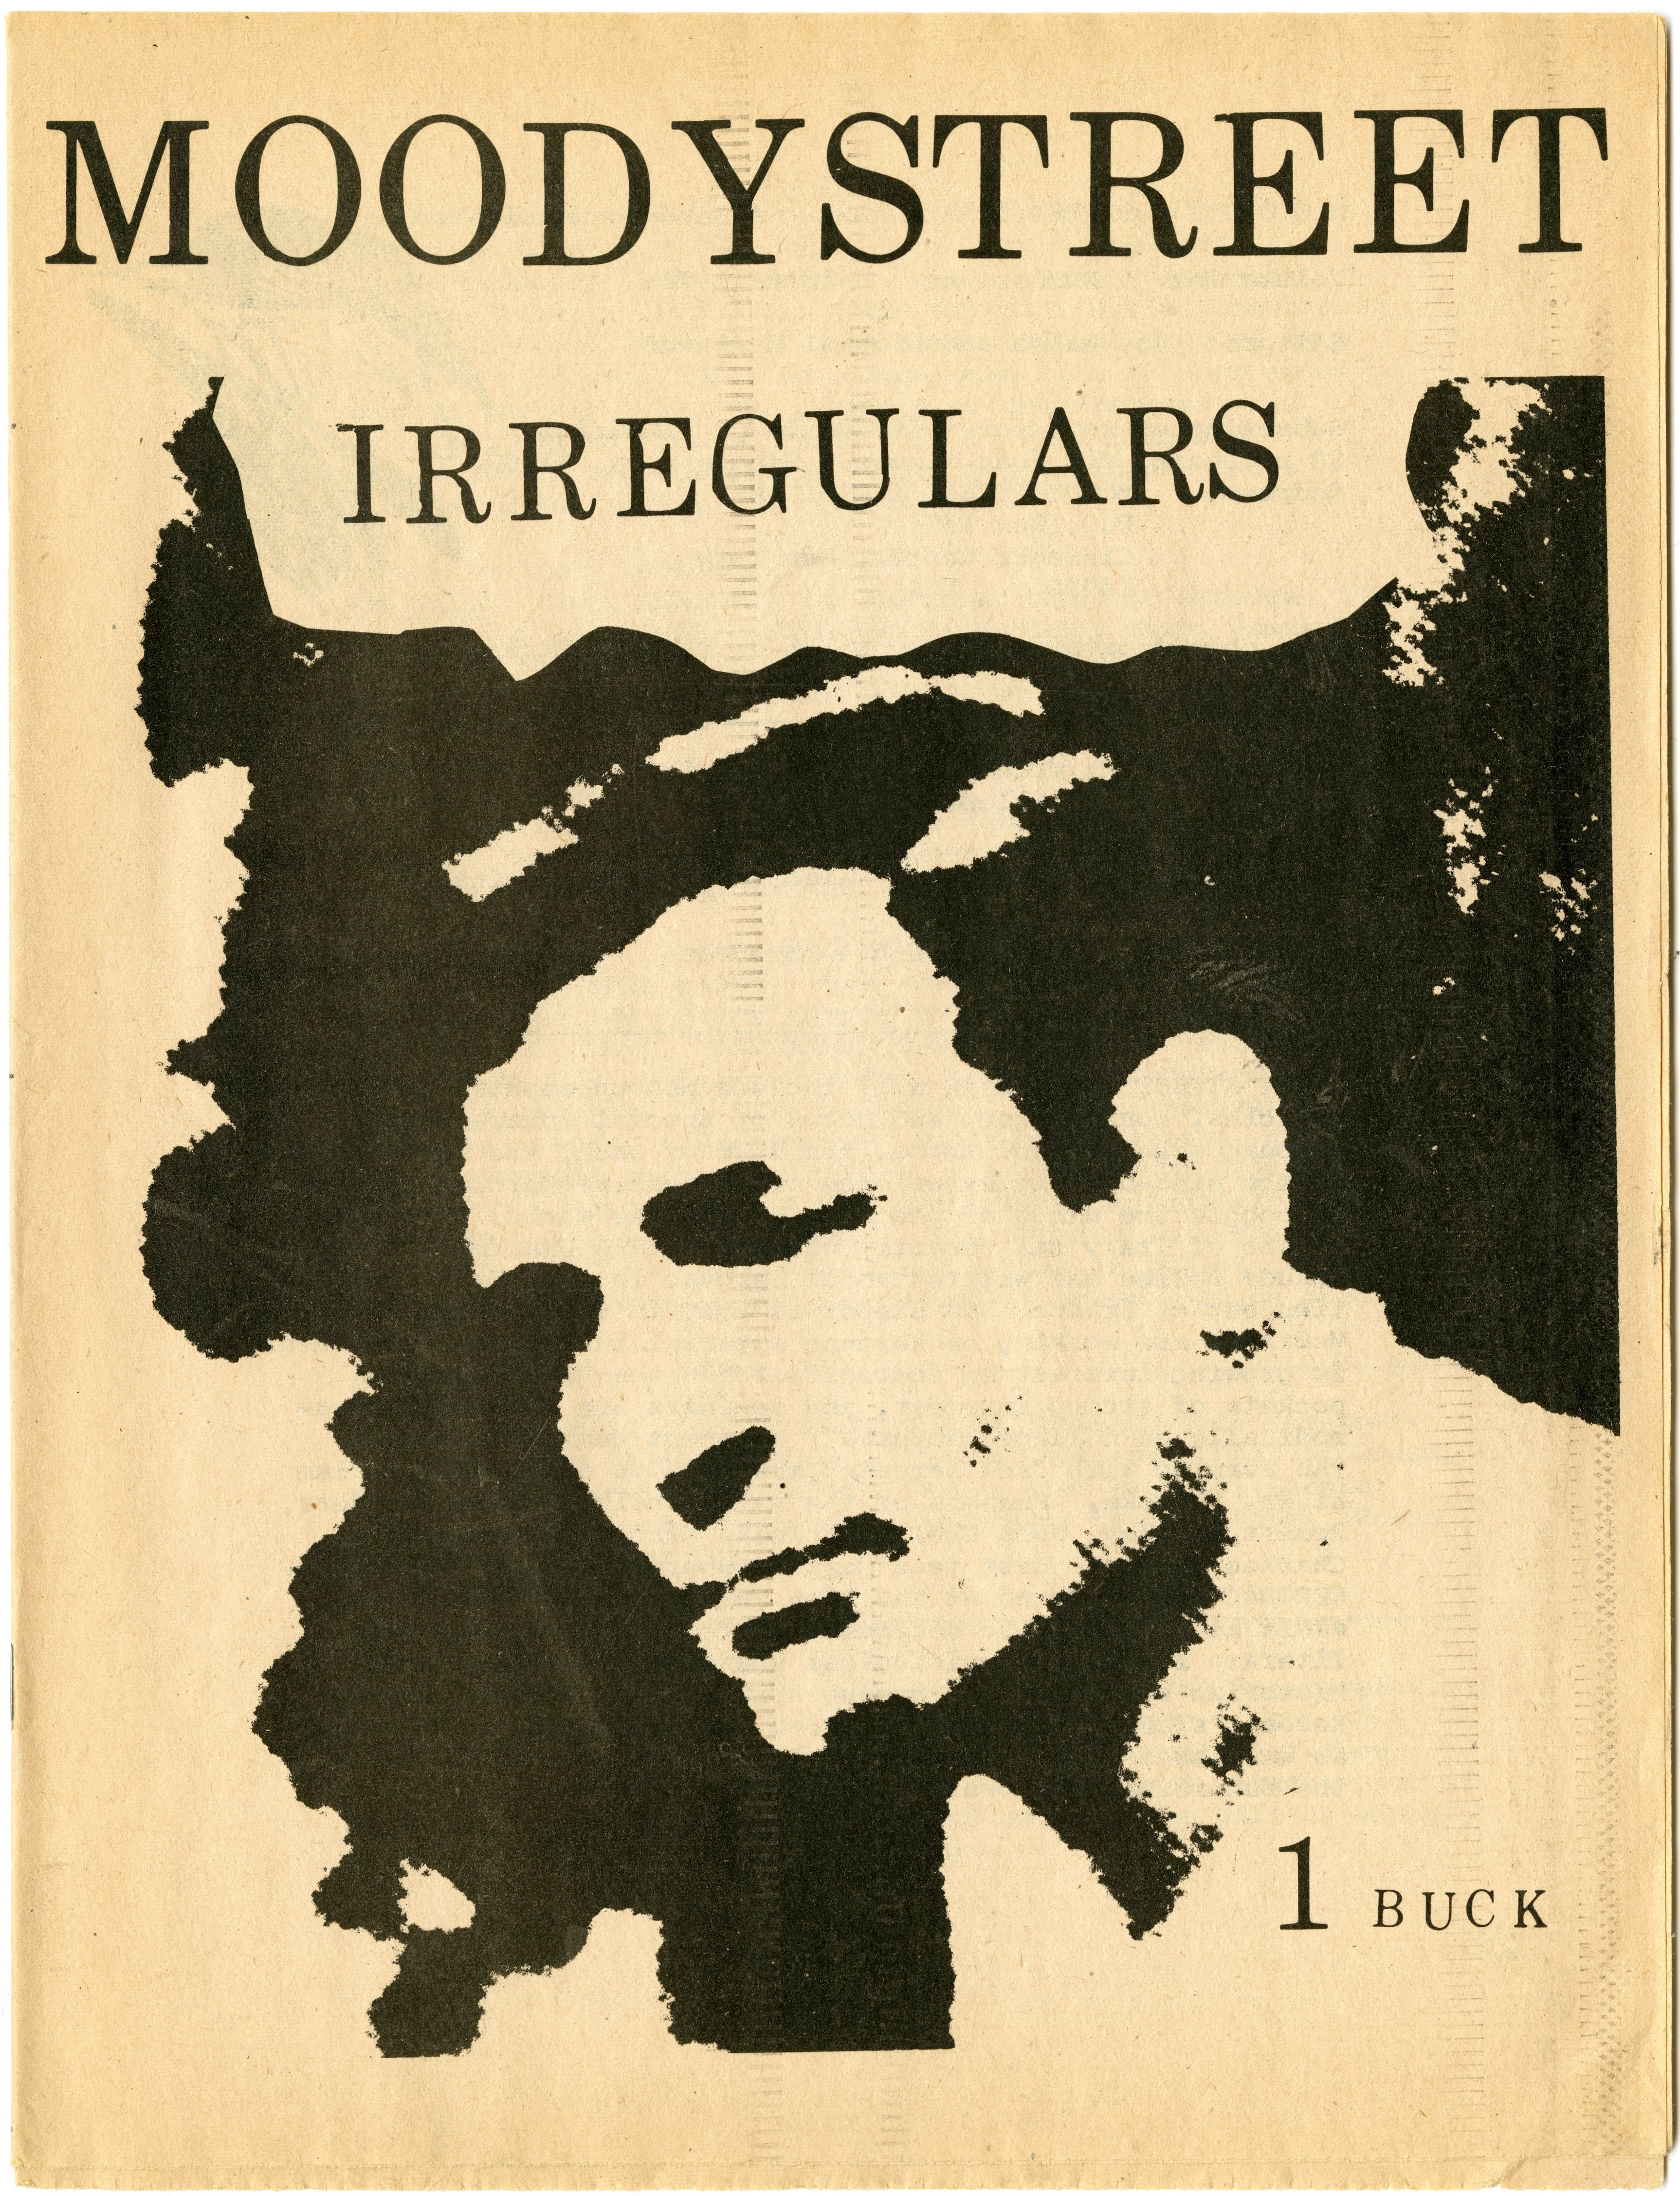 cover of Moody Street Irregulars a magazine devoted to Kerouac and the Beats